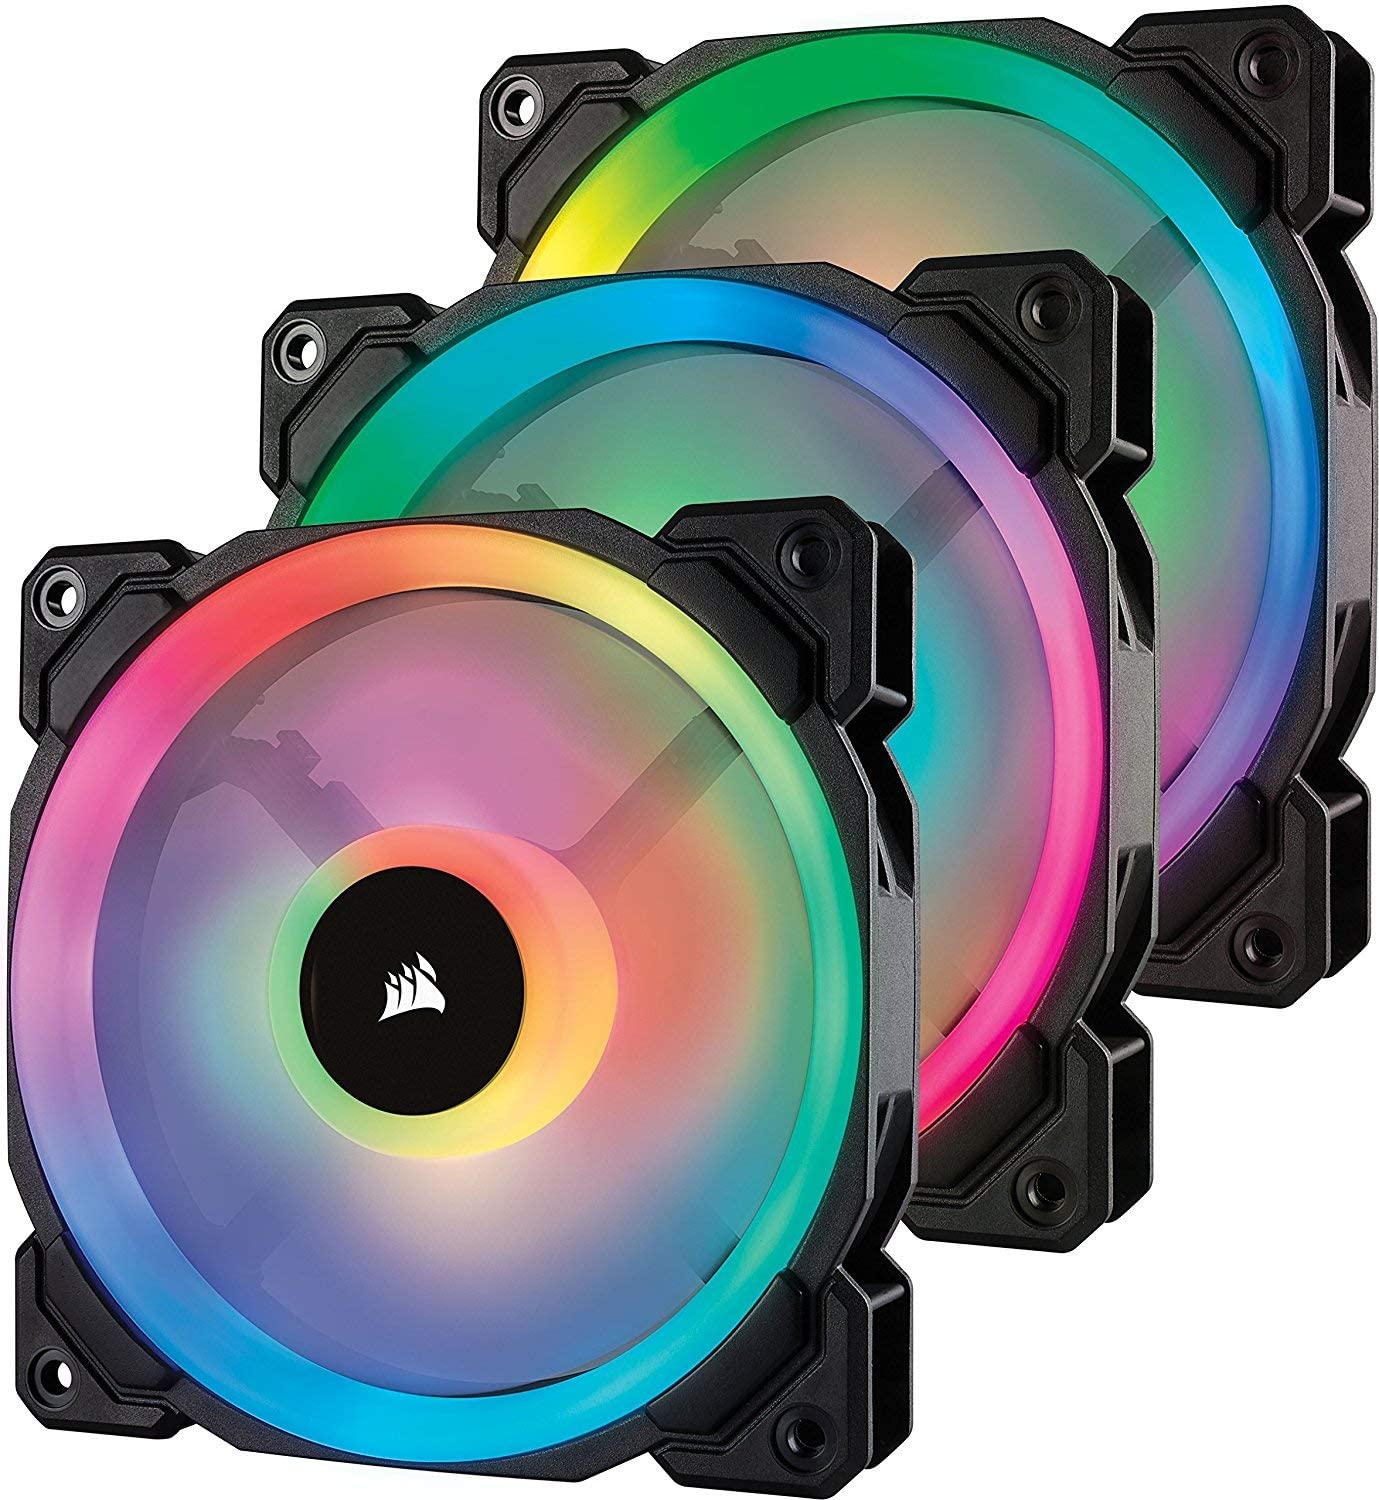 Corsair LL Series LL120 RGB 120mm Dual Light Loop RGB LED PWM Fan 3 Fan Pack with Lighting Node Pro (Renewed)